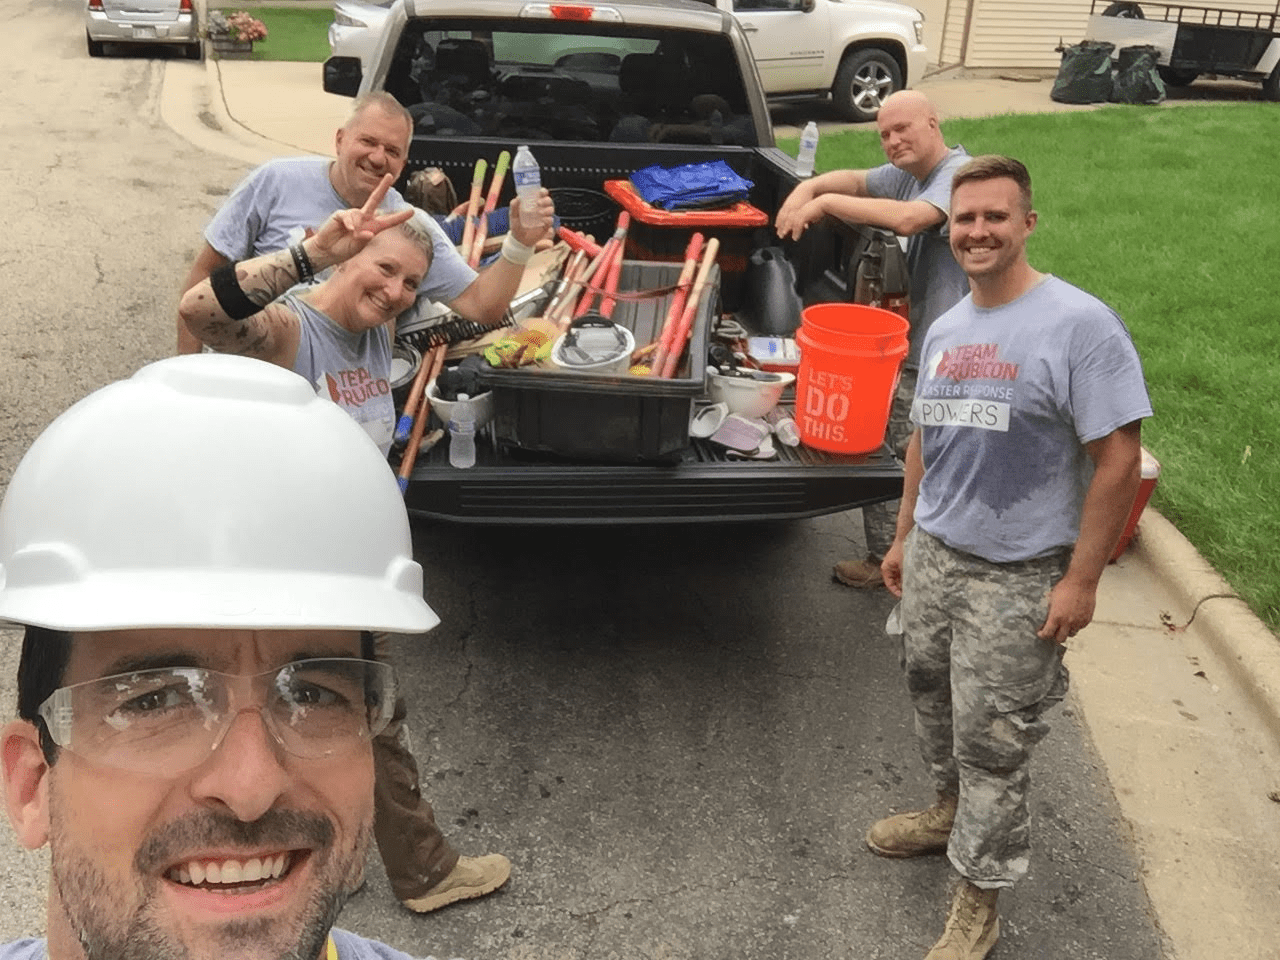 Making a Difference Team Rubicon